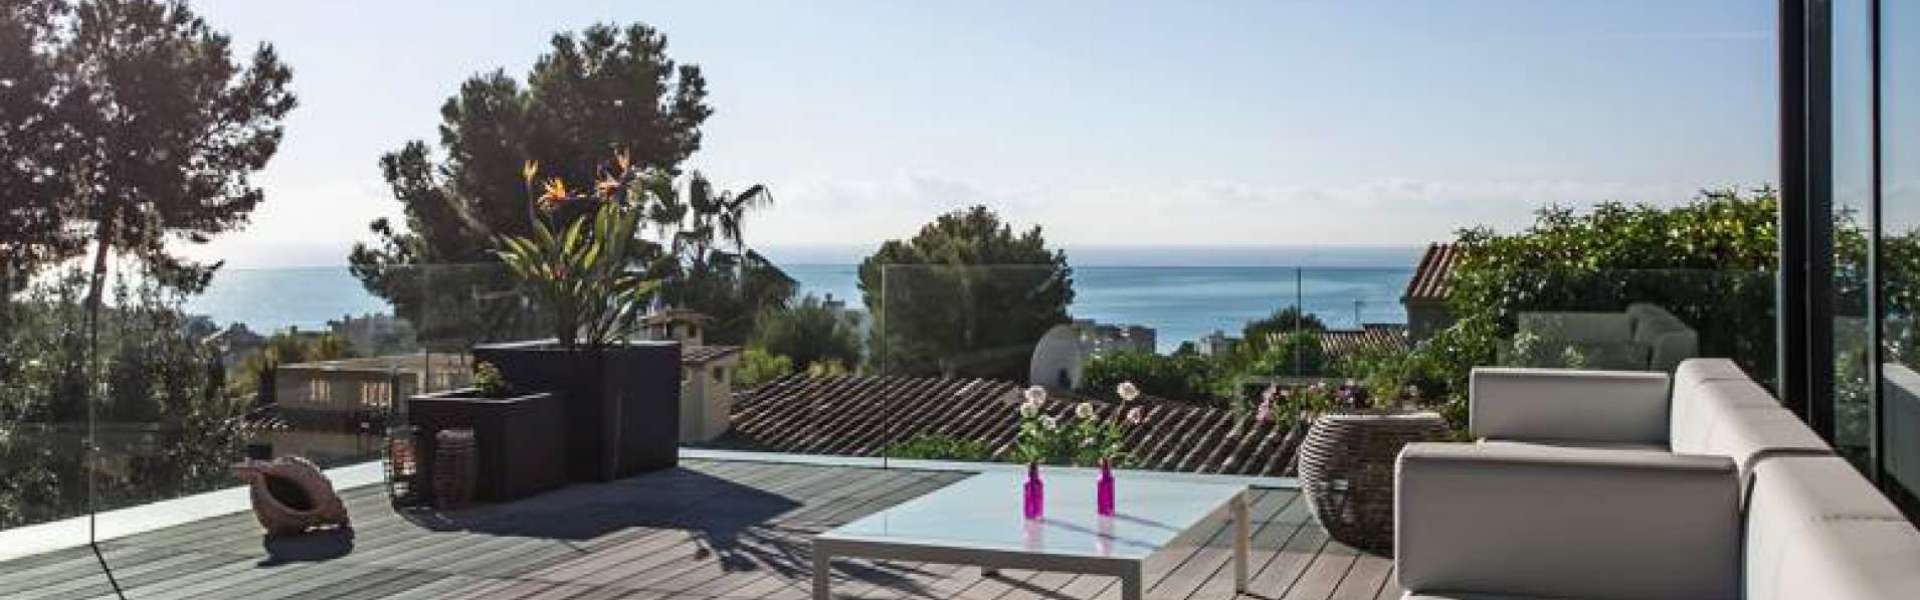 Costa d'en Blanes - Extravagant Villa for sale